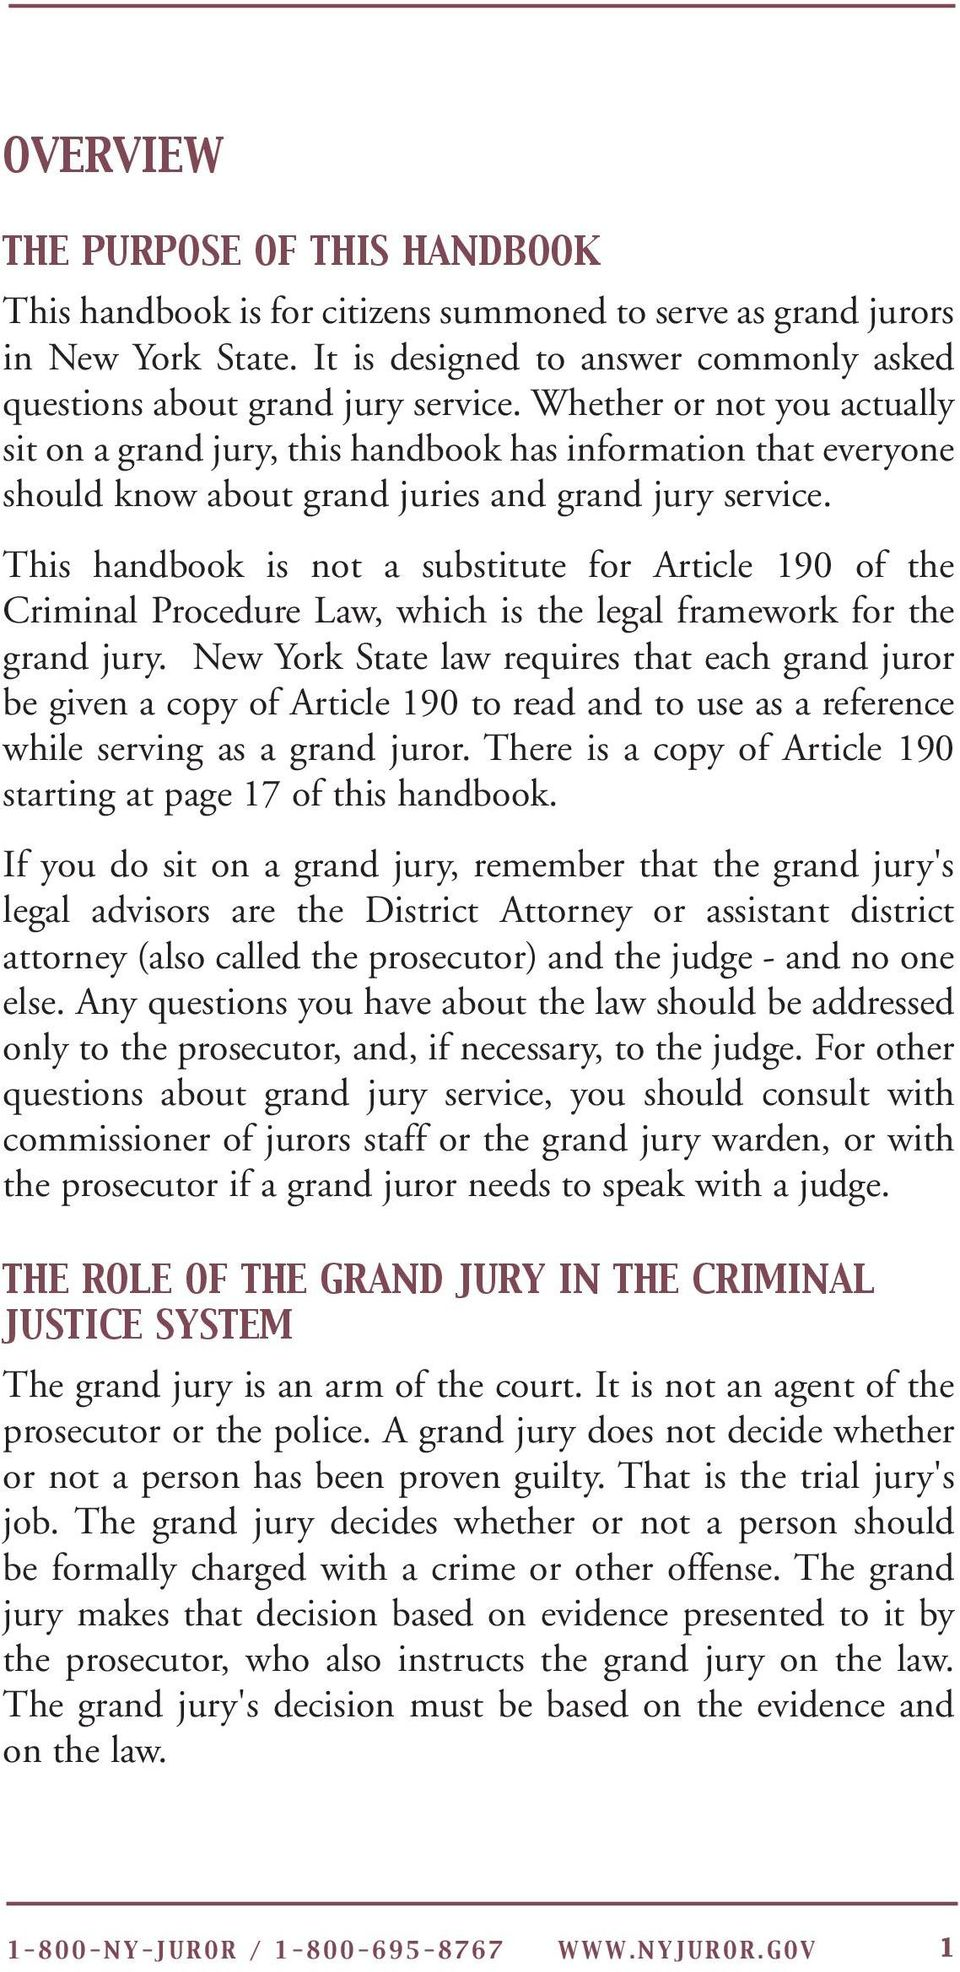 This handbook is not a substitute for Article 190 of the Criminal Procedure Law, which is the legal framework for the grand jury.